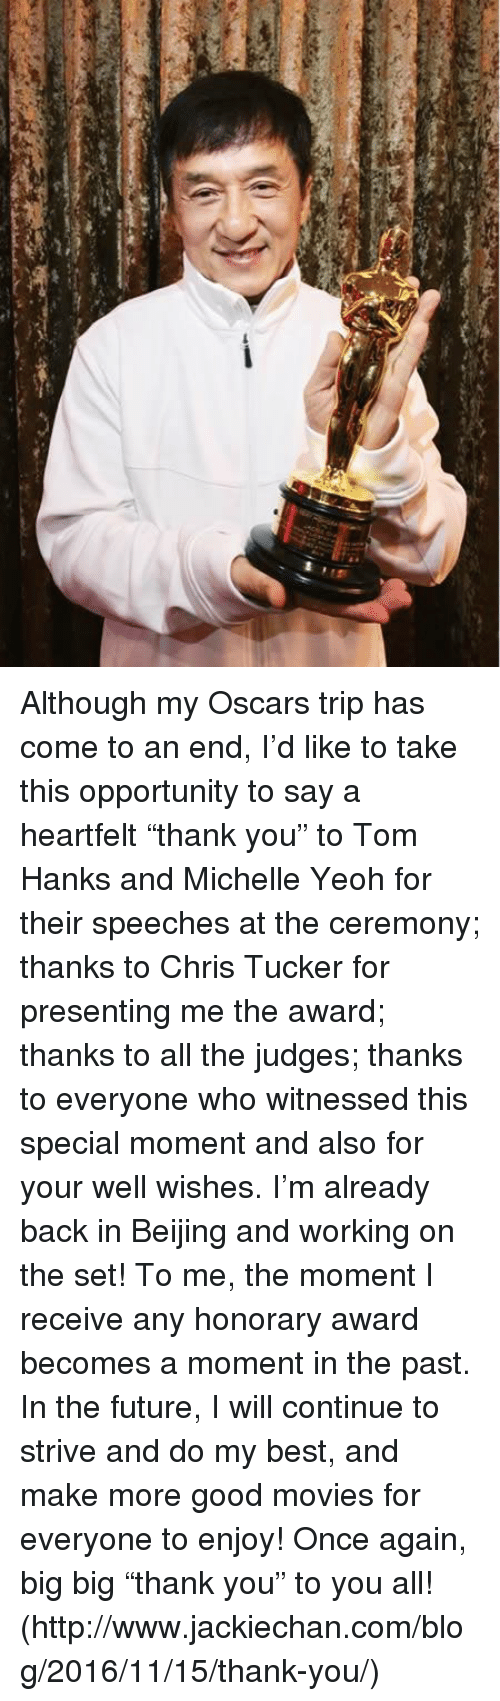 """Beijing, Chris Tucker, and Dank: Although my Oscars trip has come to an end, I'd like to take this opportunity to say a heartfelt """"thank you"""" to Tom Hanks and Michelle Yeoh for their speeches at the ceremony; thanks to Chris Tucker for presenting me the award; thanks to all the judges; thanks to everyone who witnessed this special moment and also for your well wishes. I'm already back in Beijing and working on the set! To me, the moment I receive any honorary award becomes a moment in the past. In the future, I will continue to strive and do my best, and make more good movies for everyone to enjoy! Once again, big big """"thank you"""" to you all!  (http://www.jackiechan.com/blog/2016/11/15/thank-you/)"""